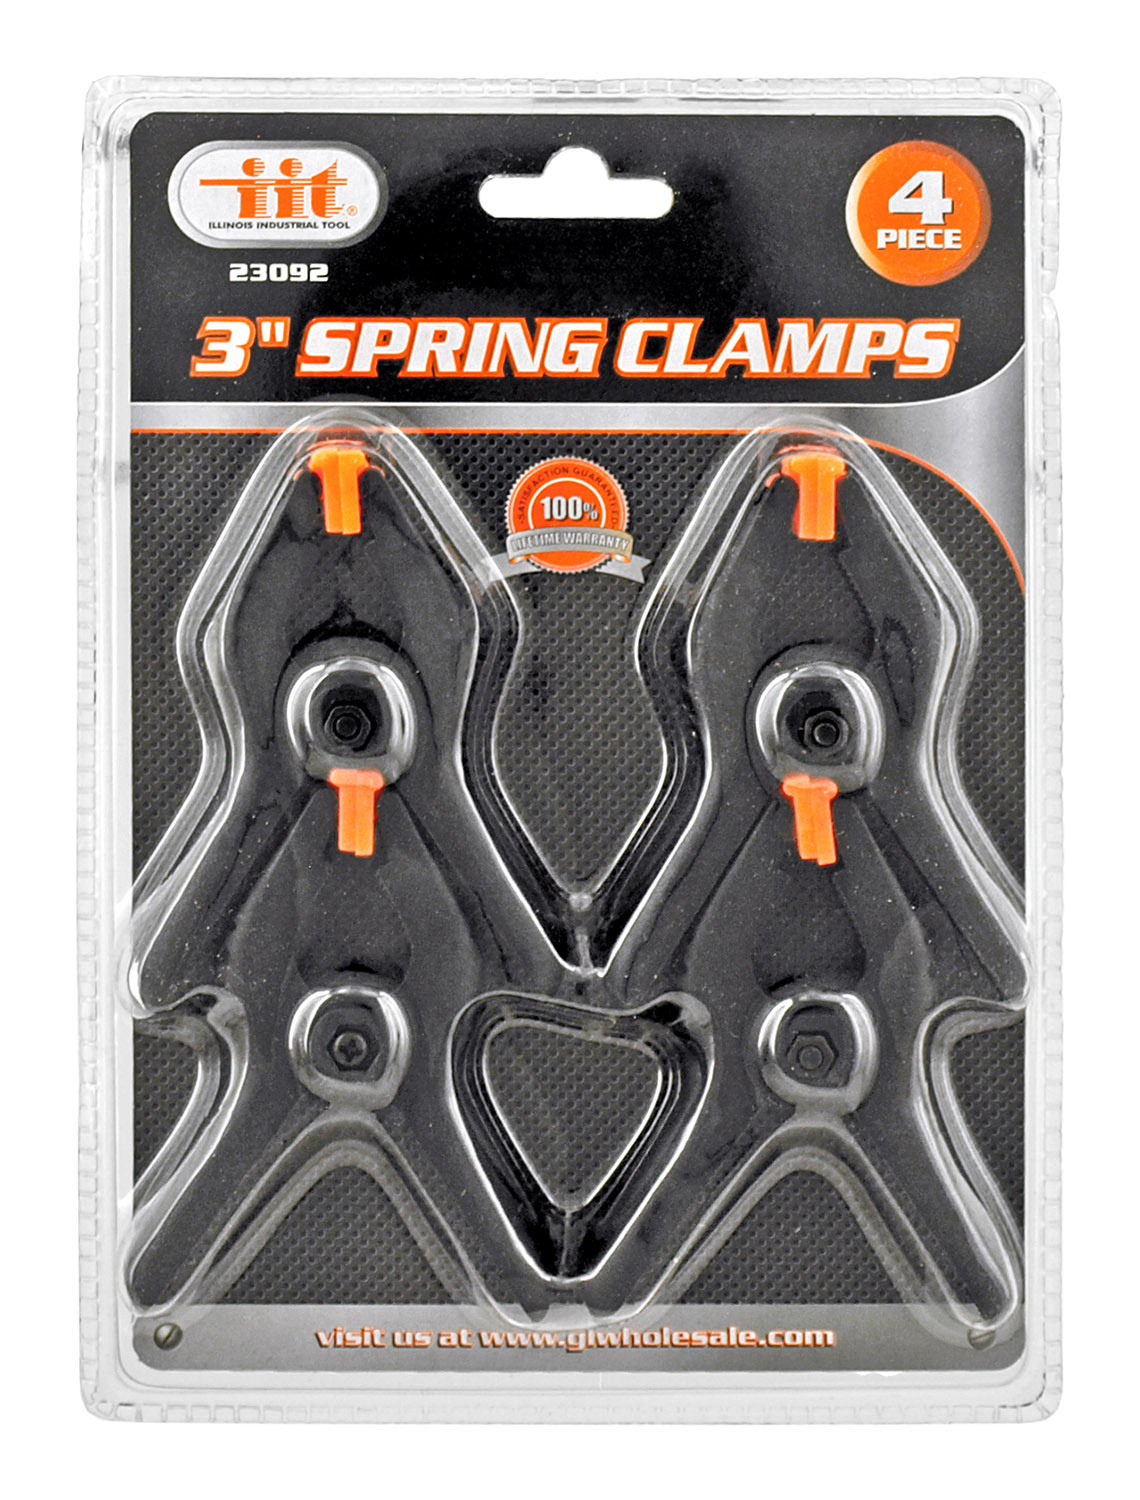 3 in Hand Spring Clamp Set of 4 pieces - Illinois Industrial Tool